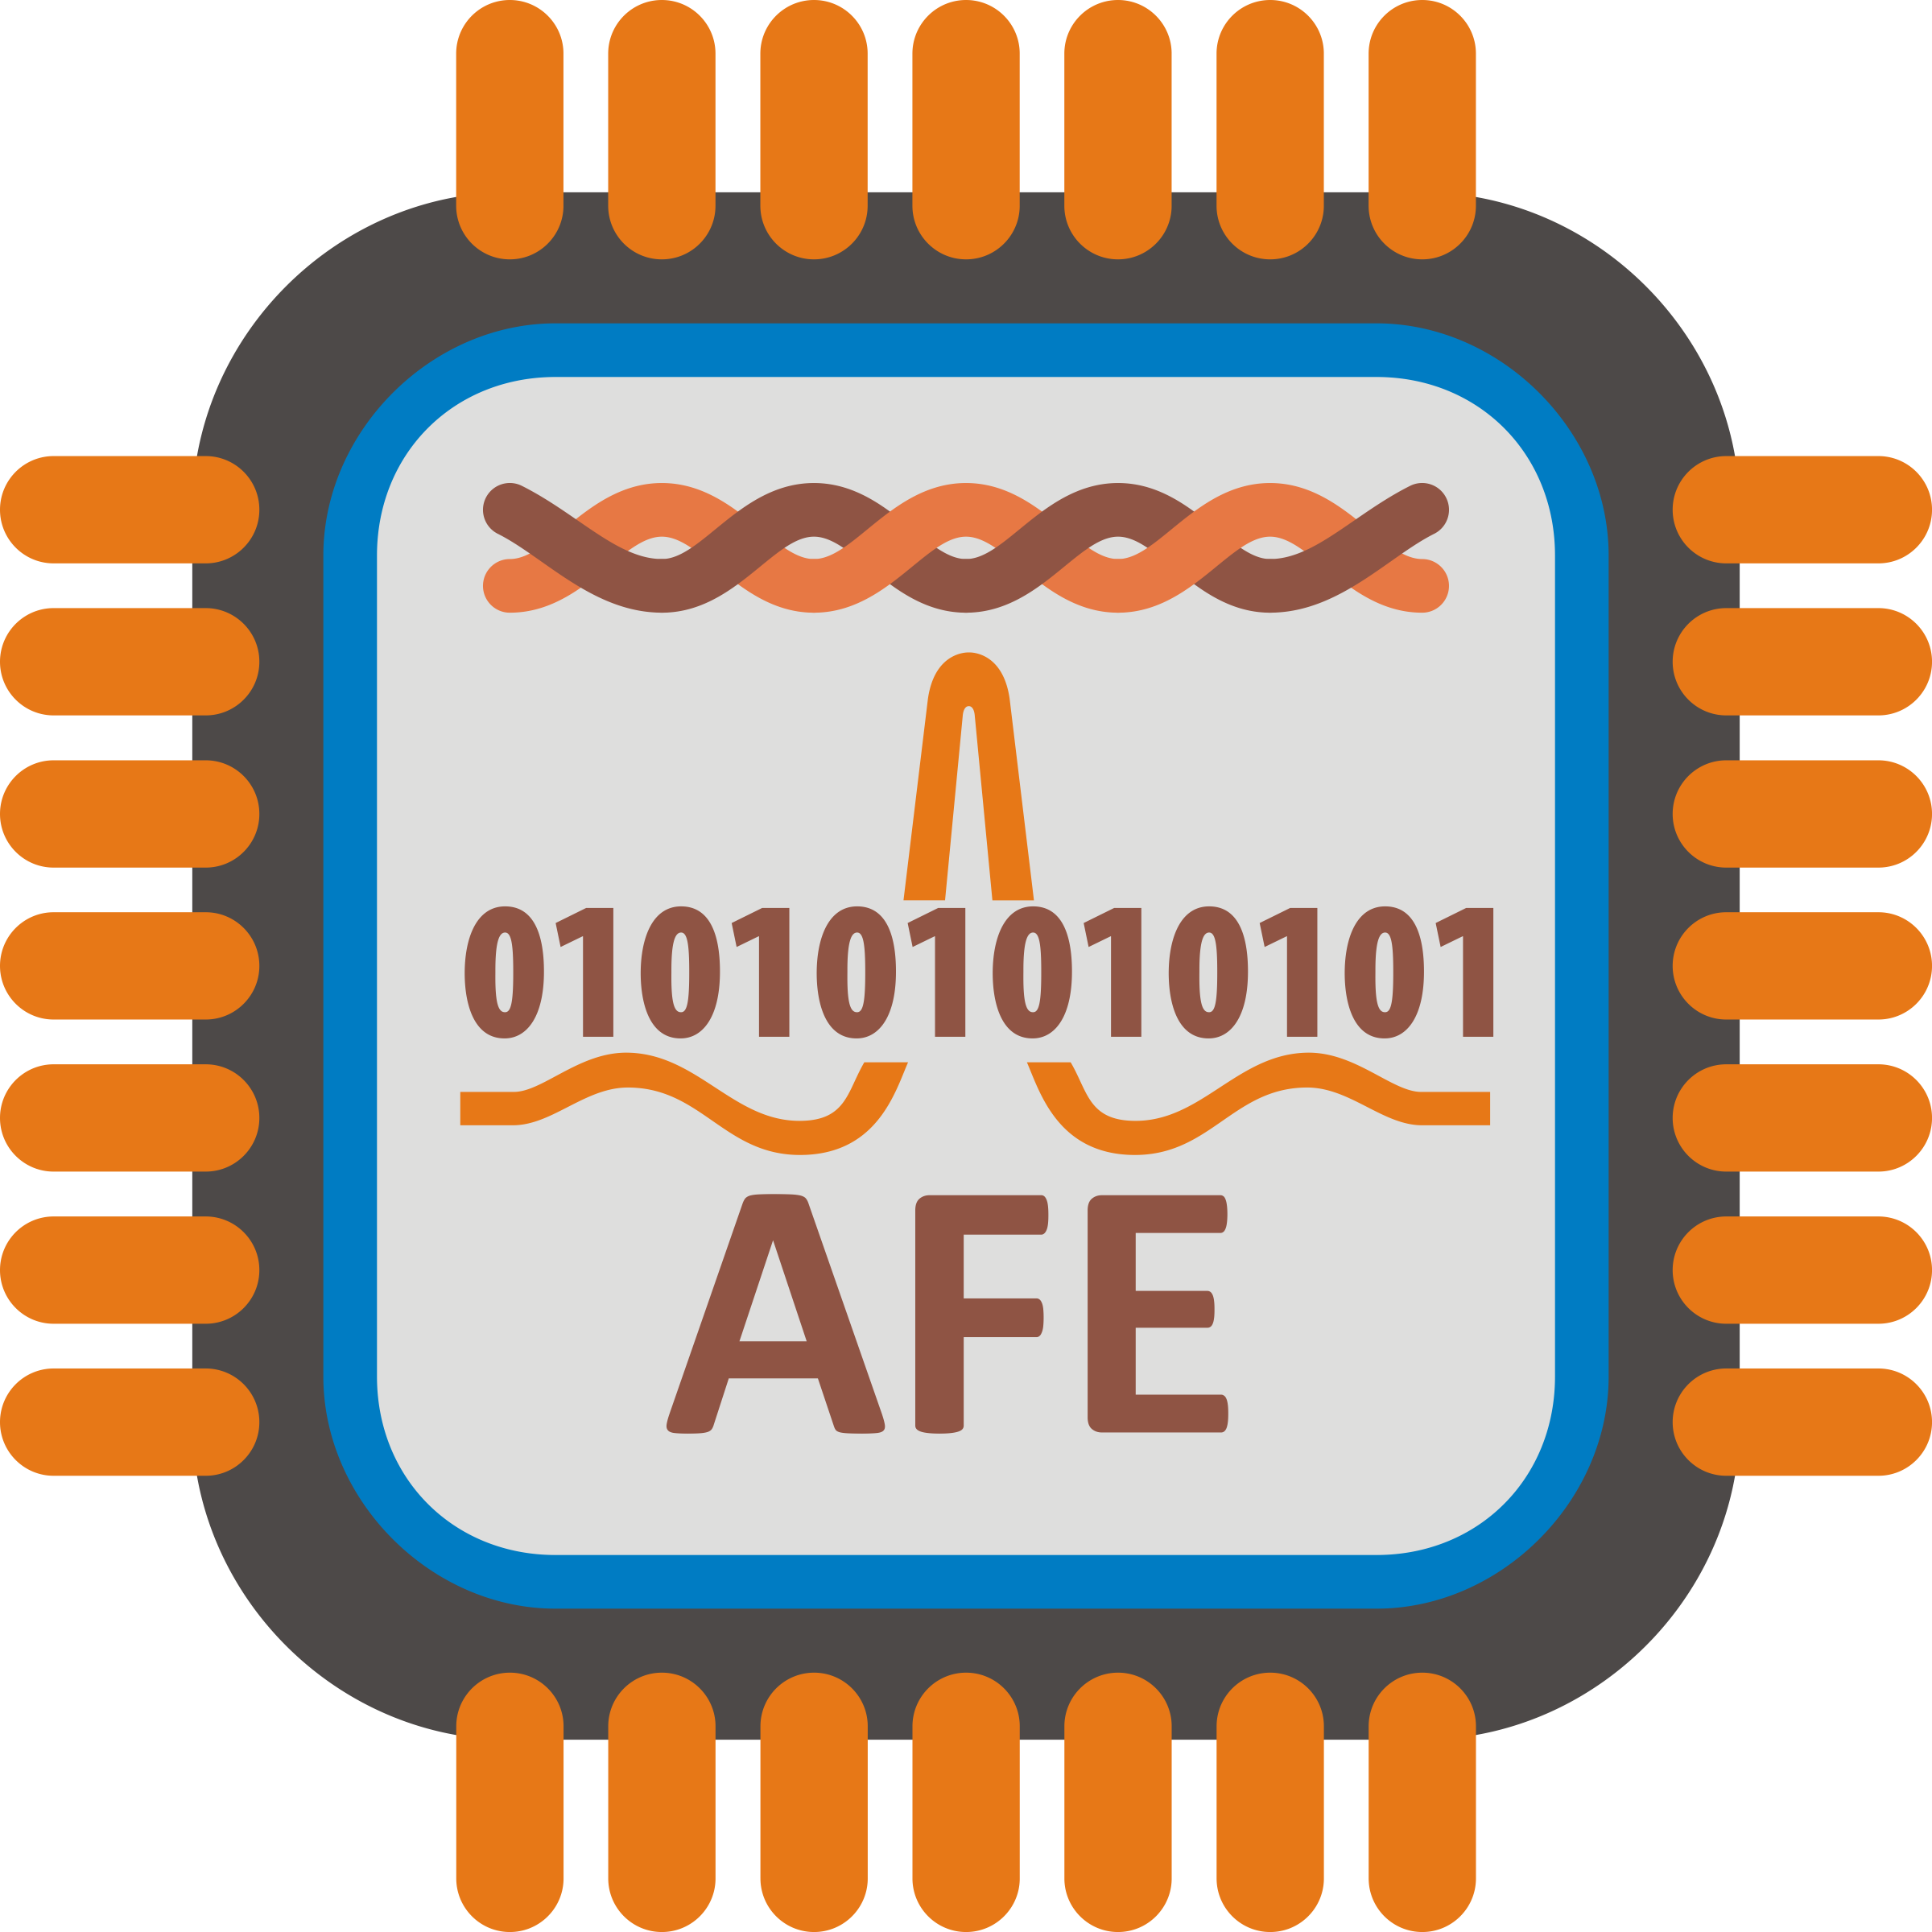 ADSL AFE Chip by pgbrandolin